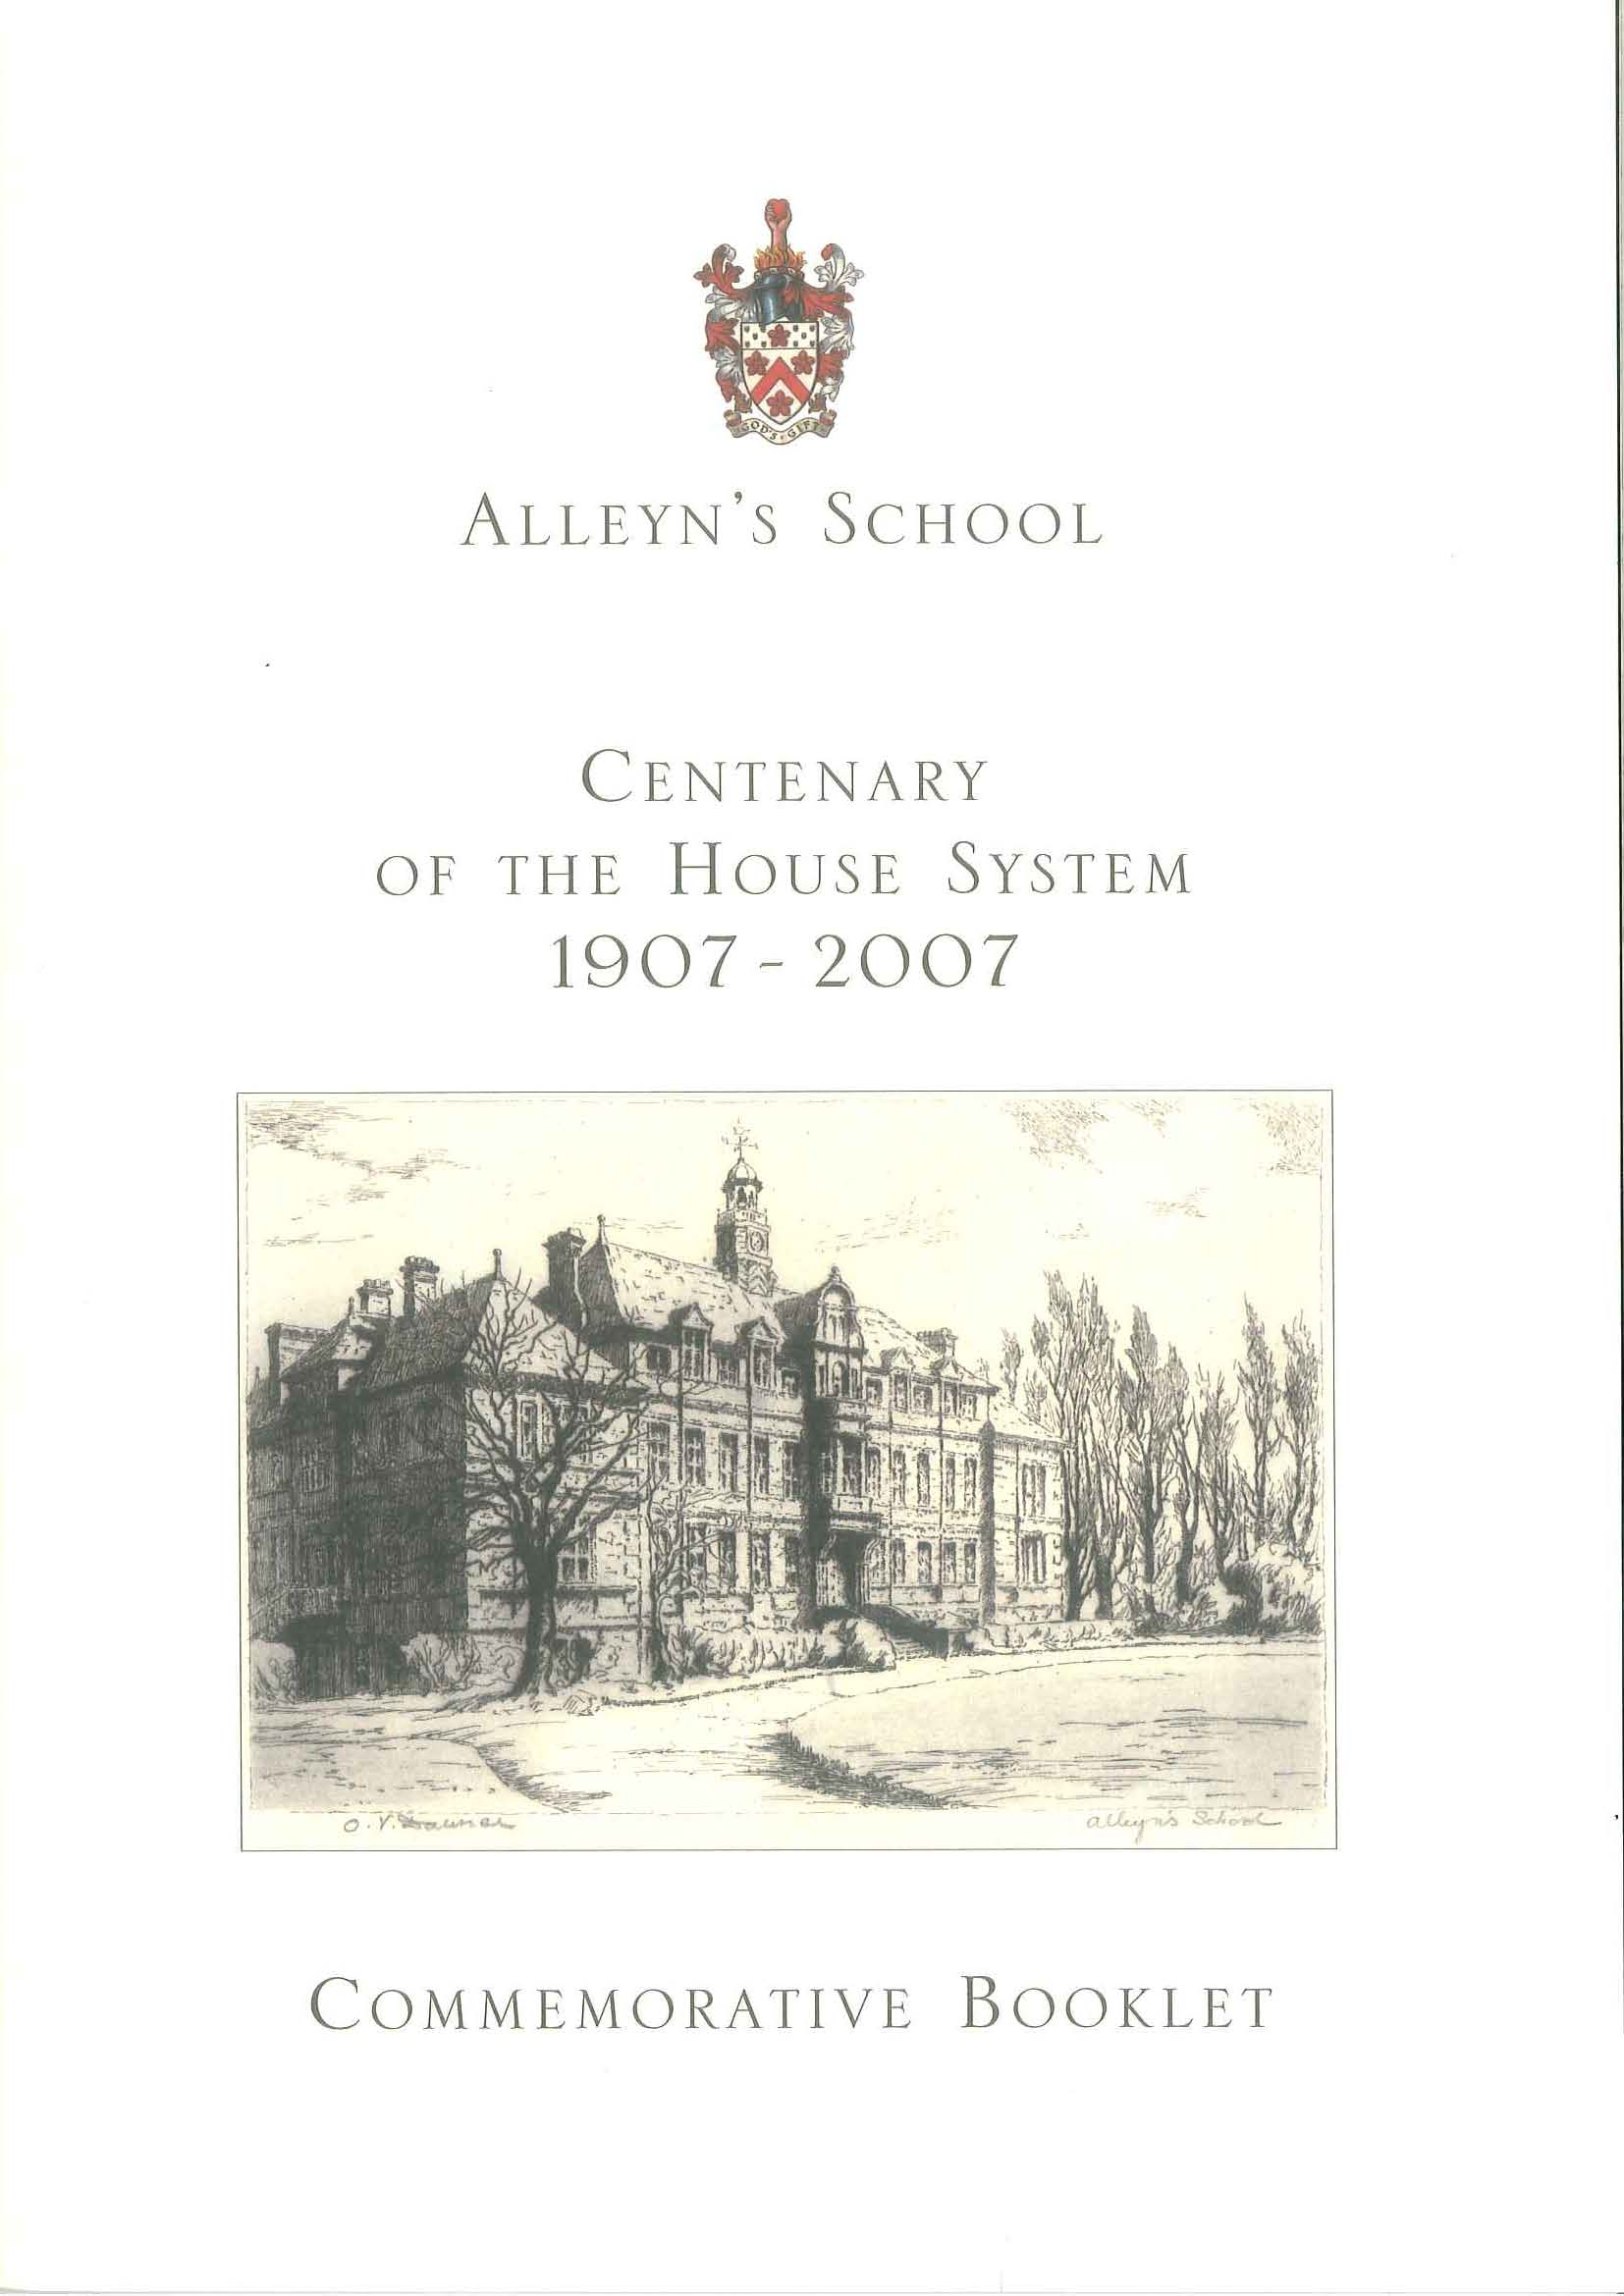 Centenary of the House-System brochure